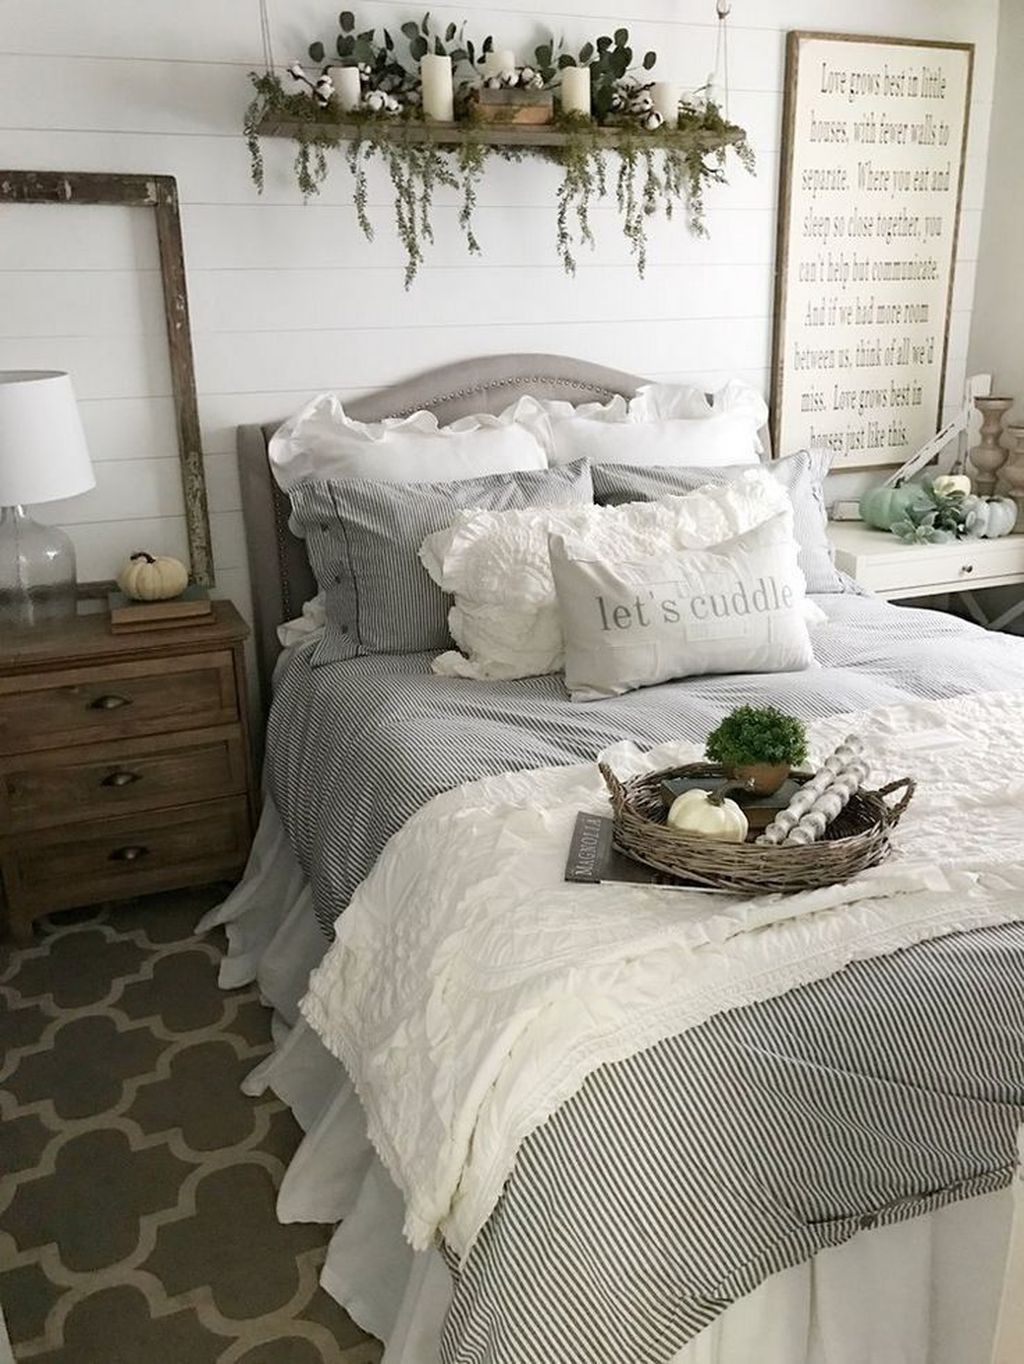 The Best Small Master Bedroom Design Ideas WIth Farmhouse Style 09